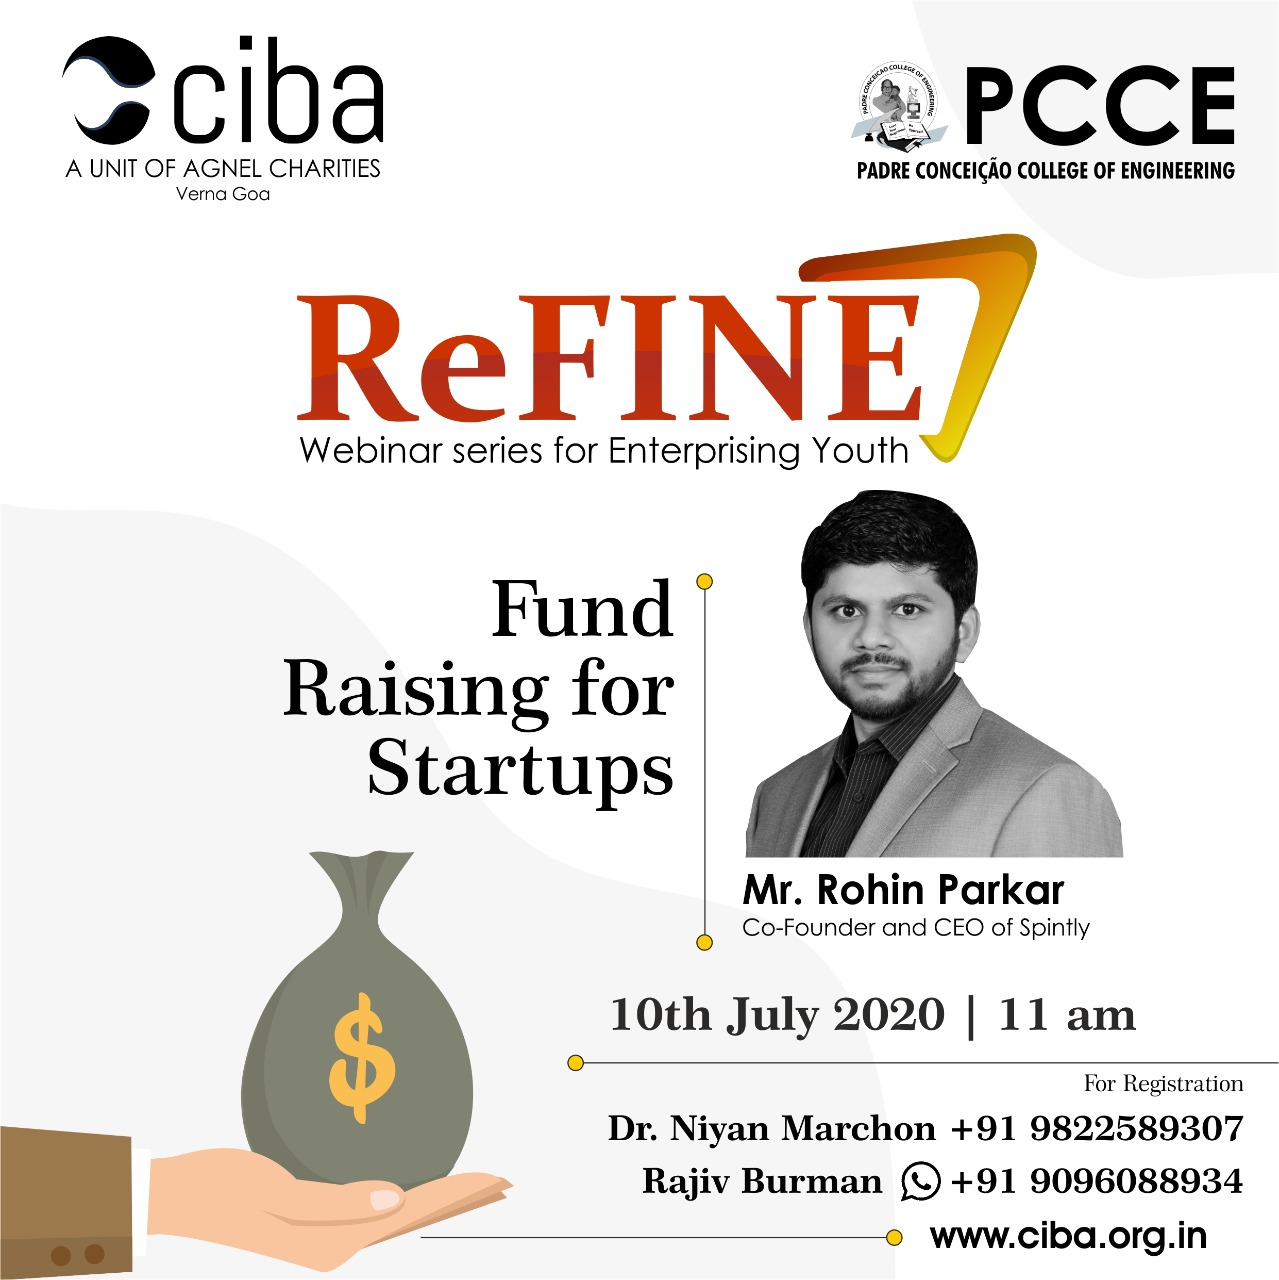 ciba-ReFINE - Fund Raising for Startups